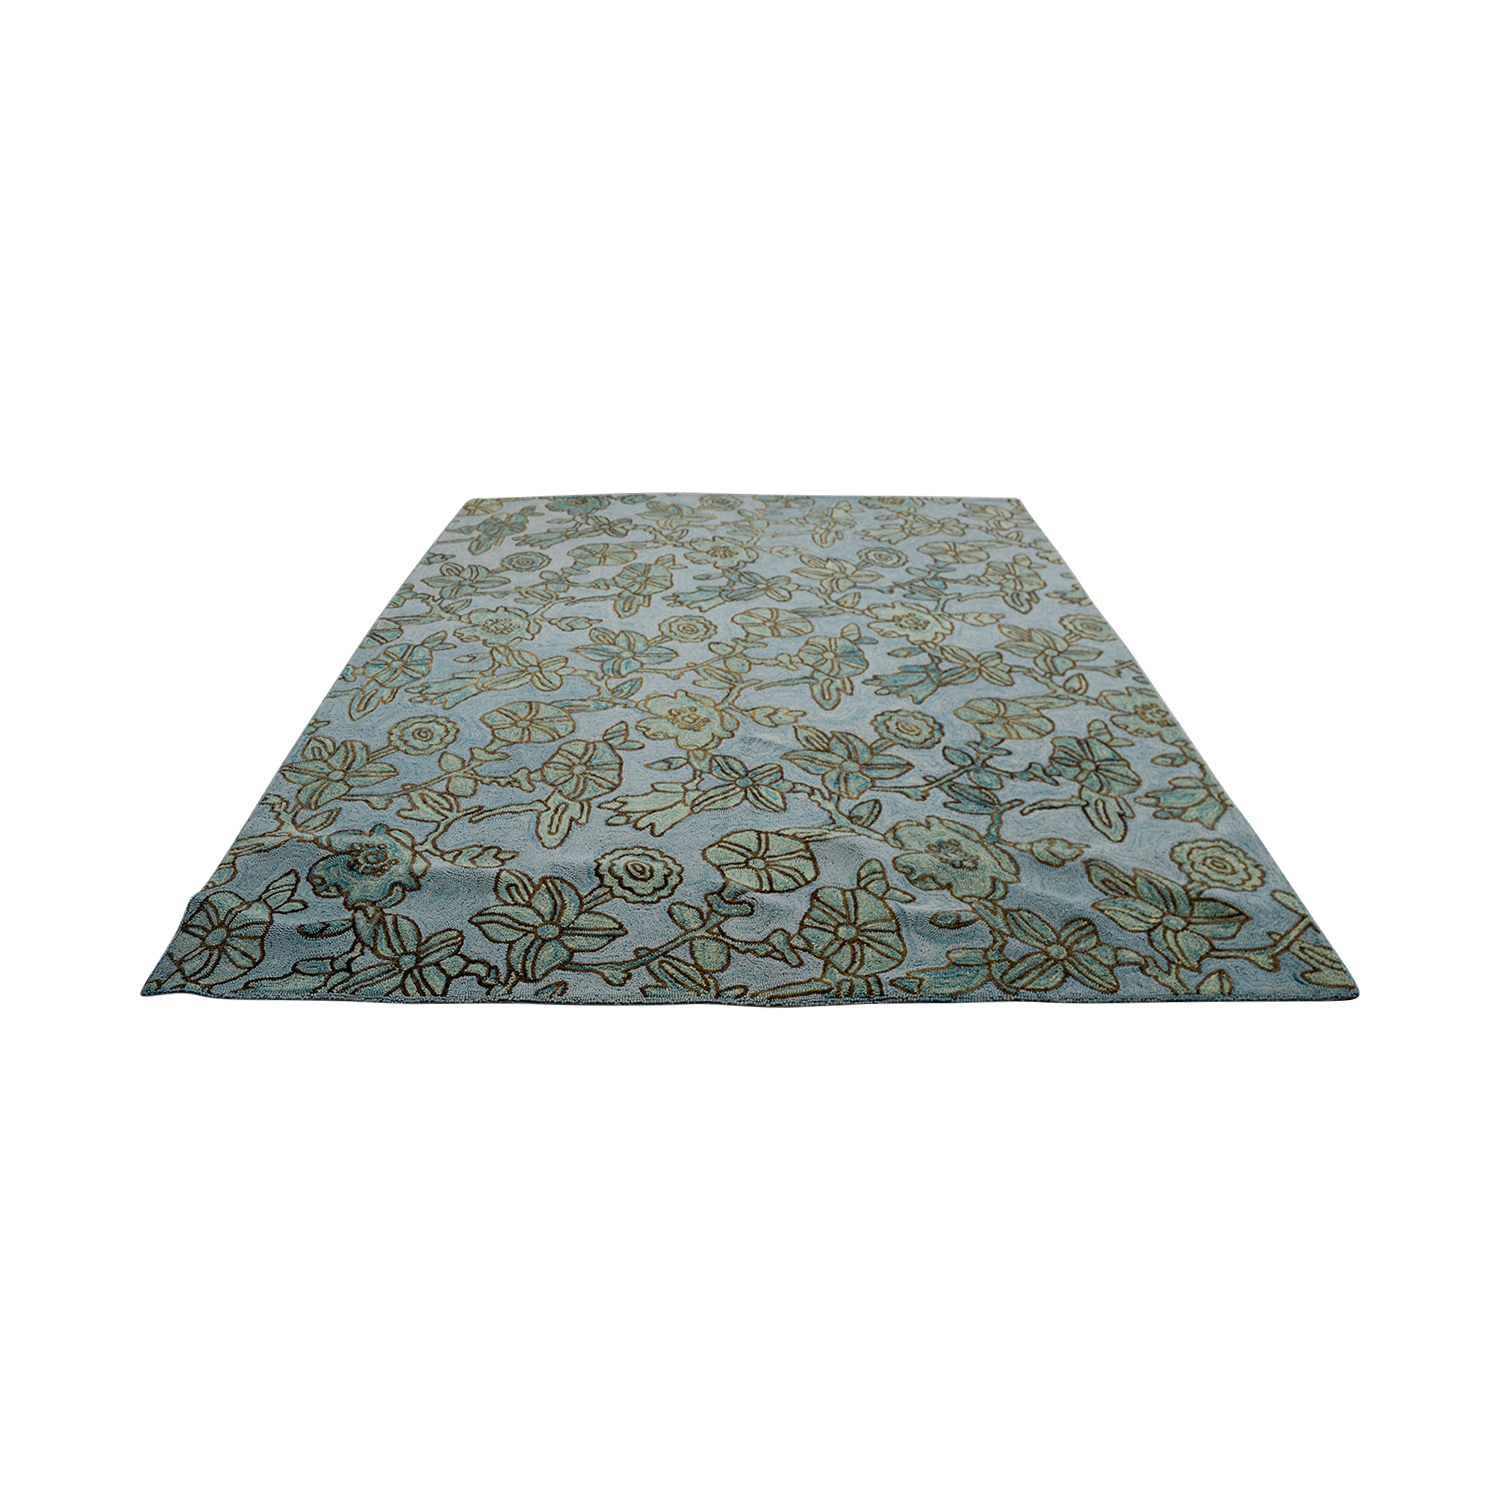 buy Obeetee Blue Brown Floral Rug Obeetee Decor